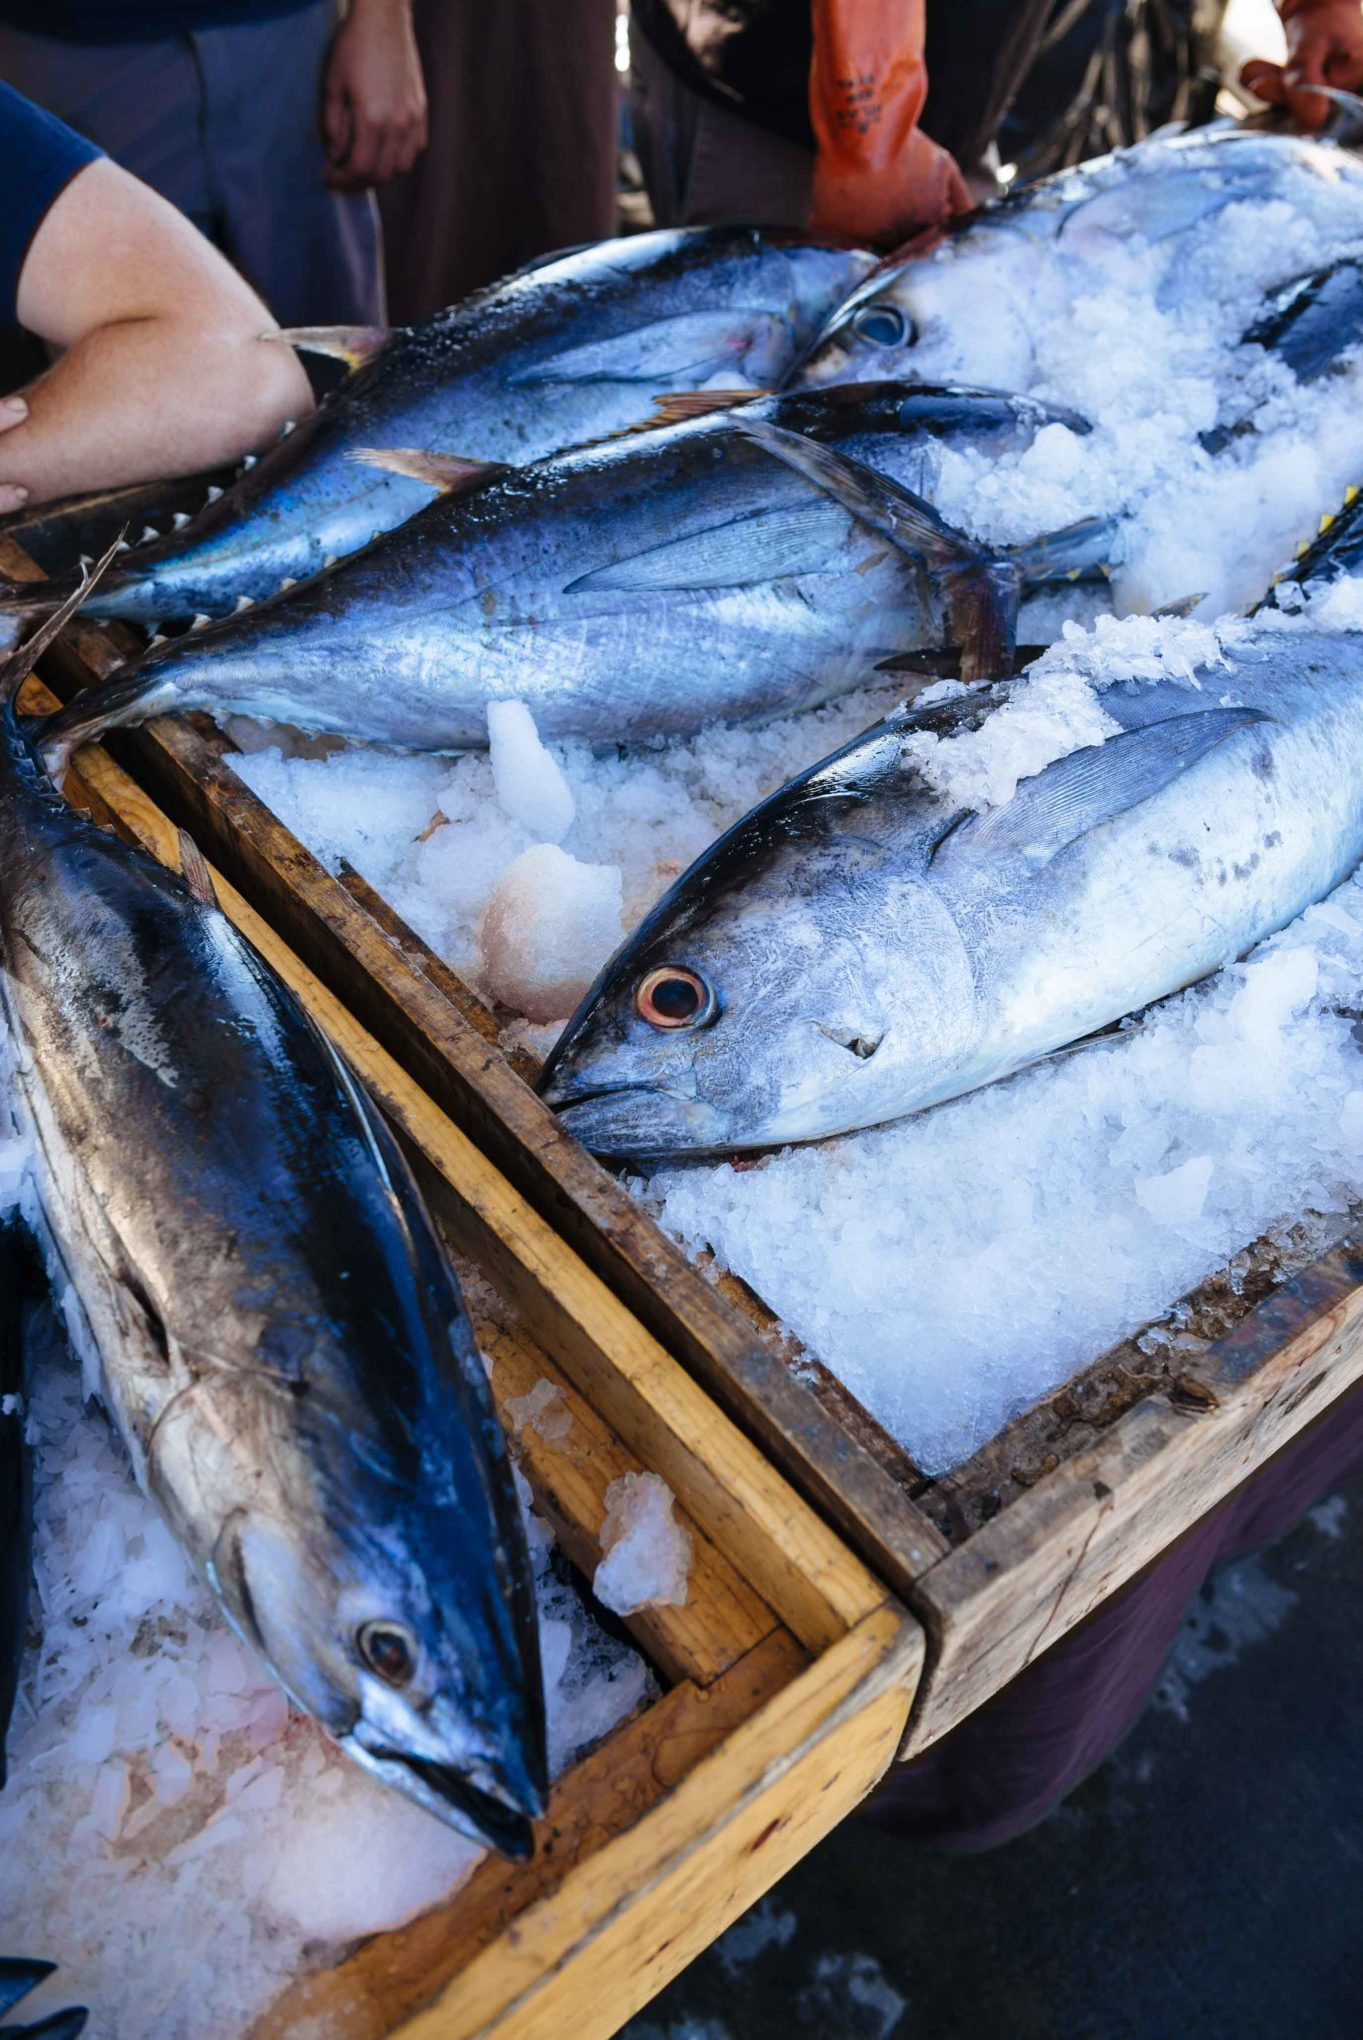 Visit the Tuna Harbor Dockside market for the freshest fish